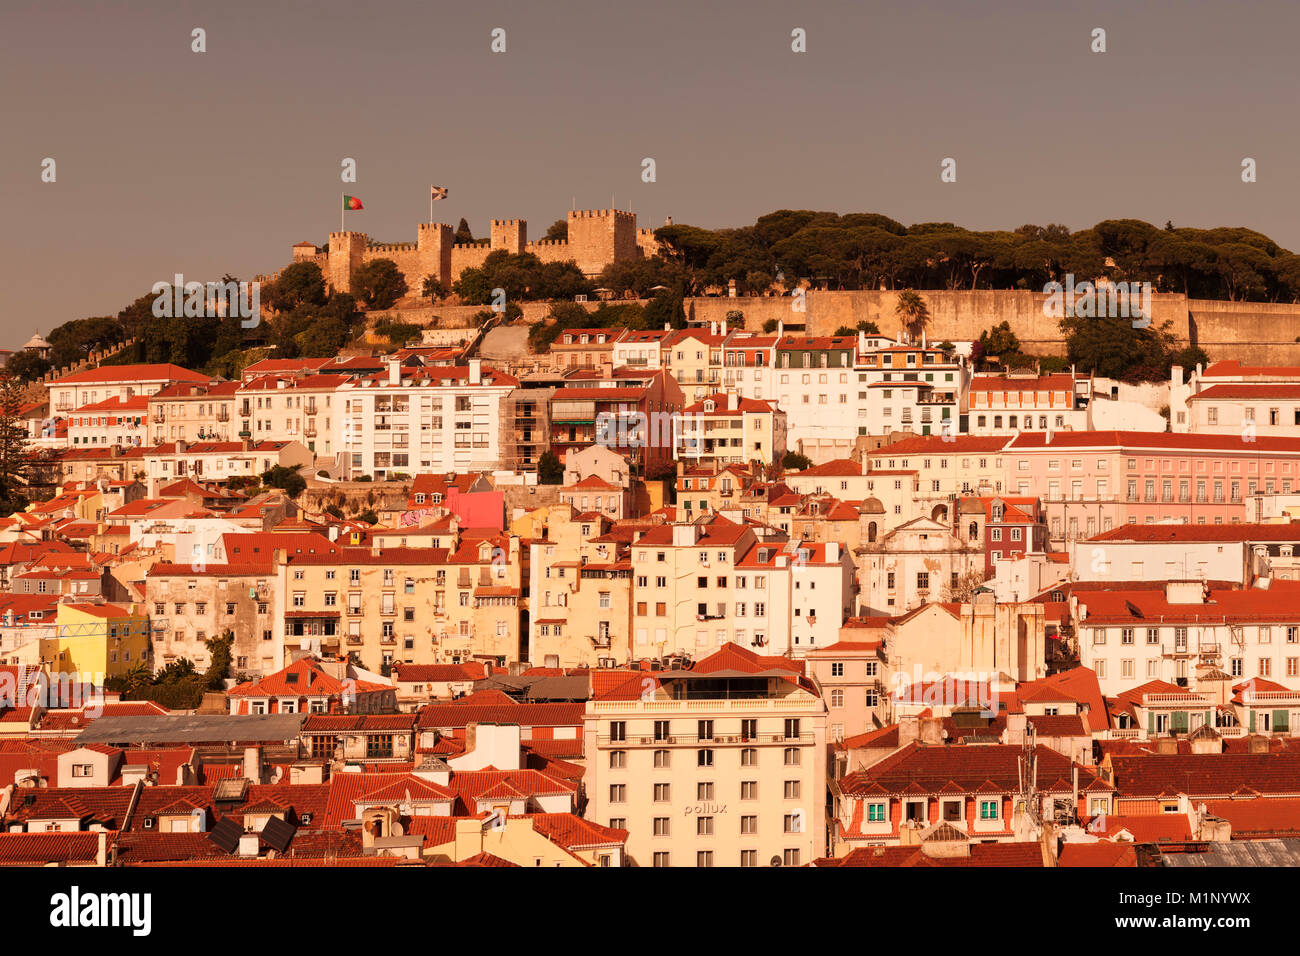 Vue sur la vieille ville de Castelo de Sao Jorge Castle au coucher du soleil, Lisbonne, Portugal, Europe Photo Stock